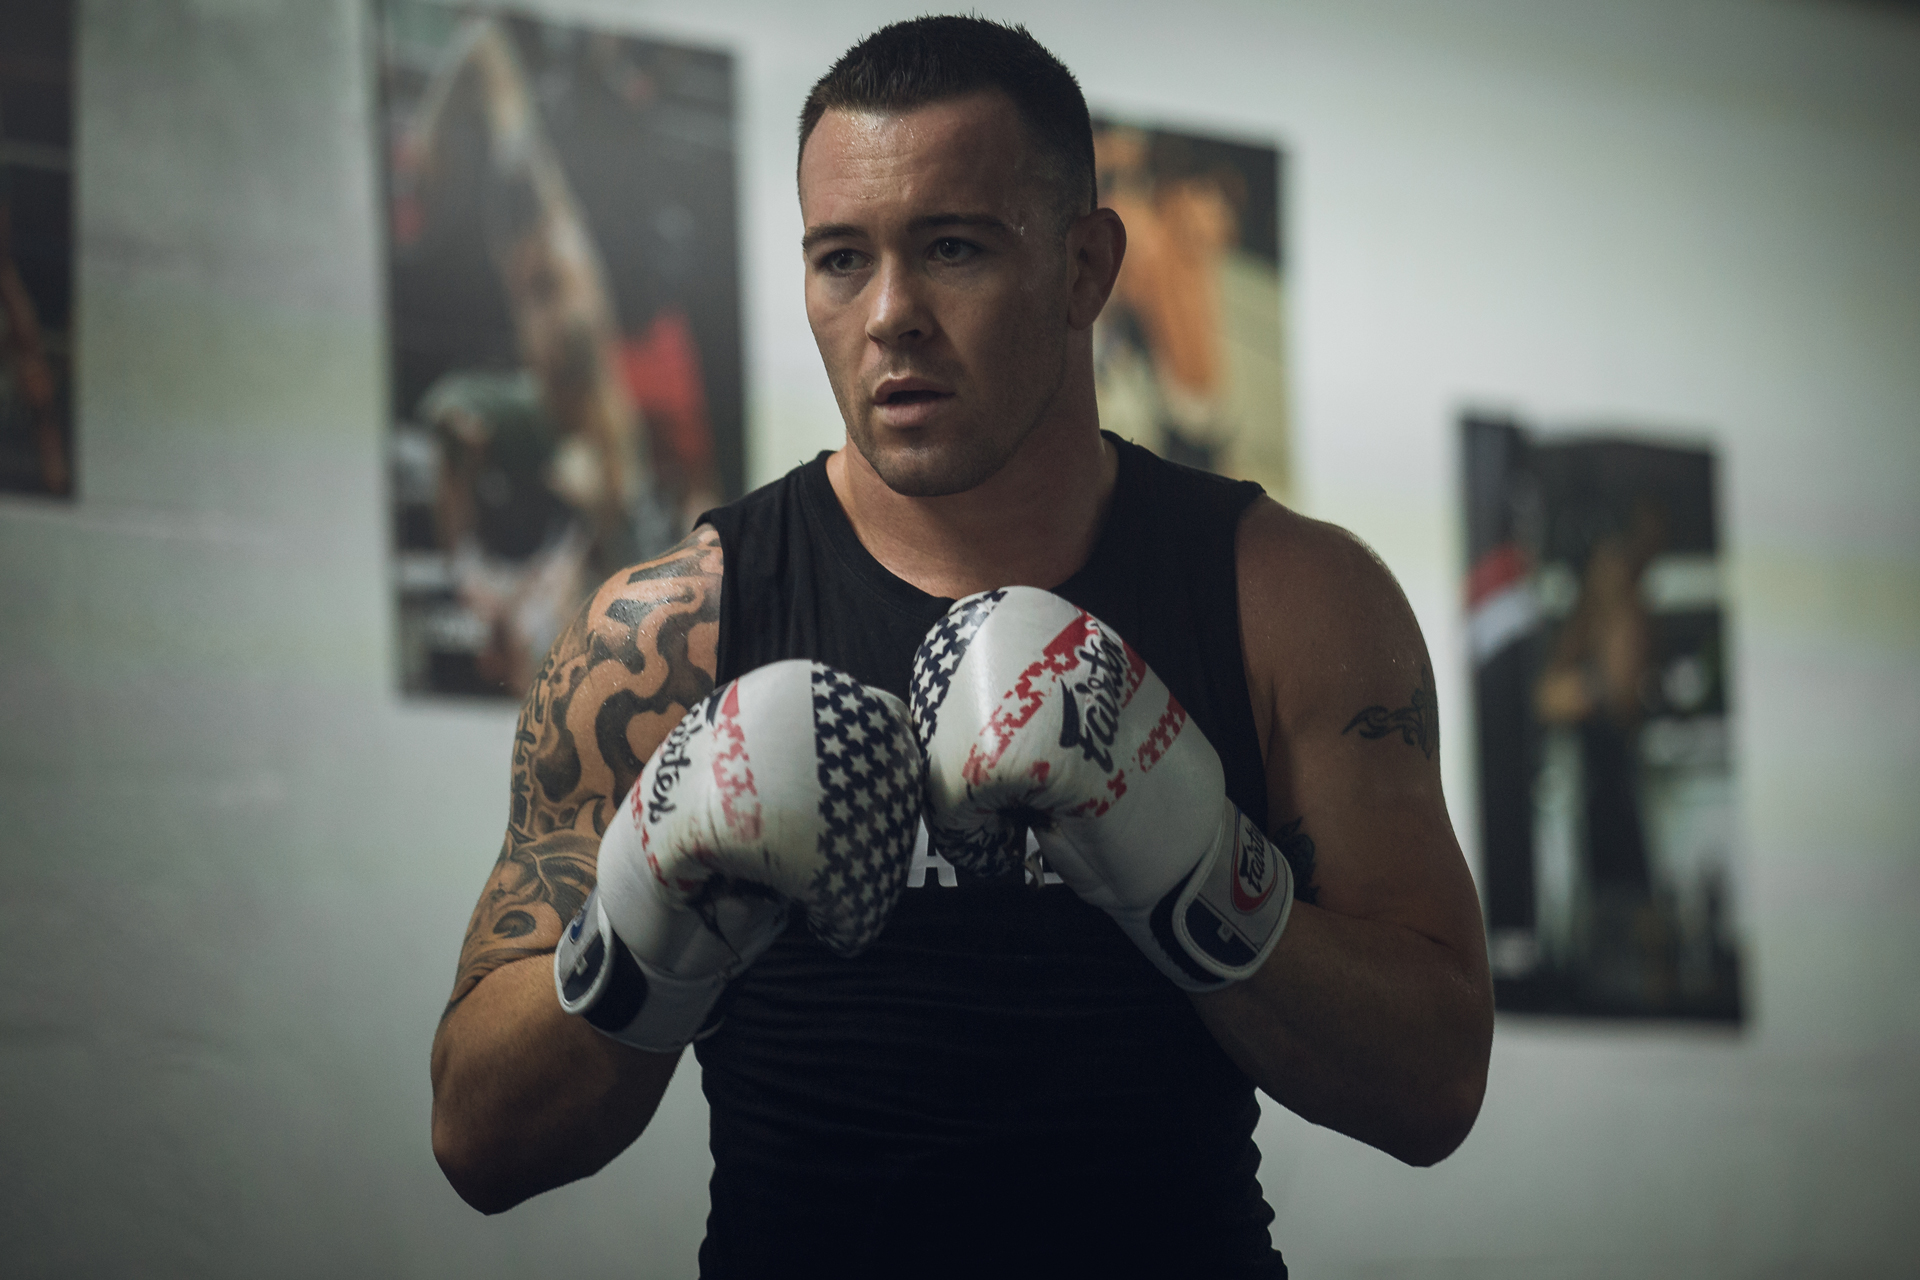 UFC's Colby Covington arrives in Vegas to cause 'chaos', crash UFC events and visit the world's largest cannabis dispensary.